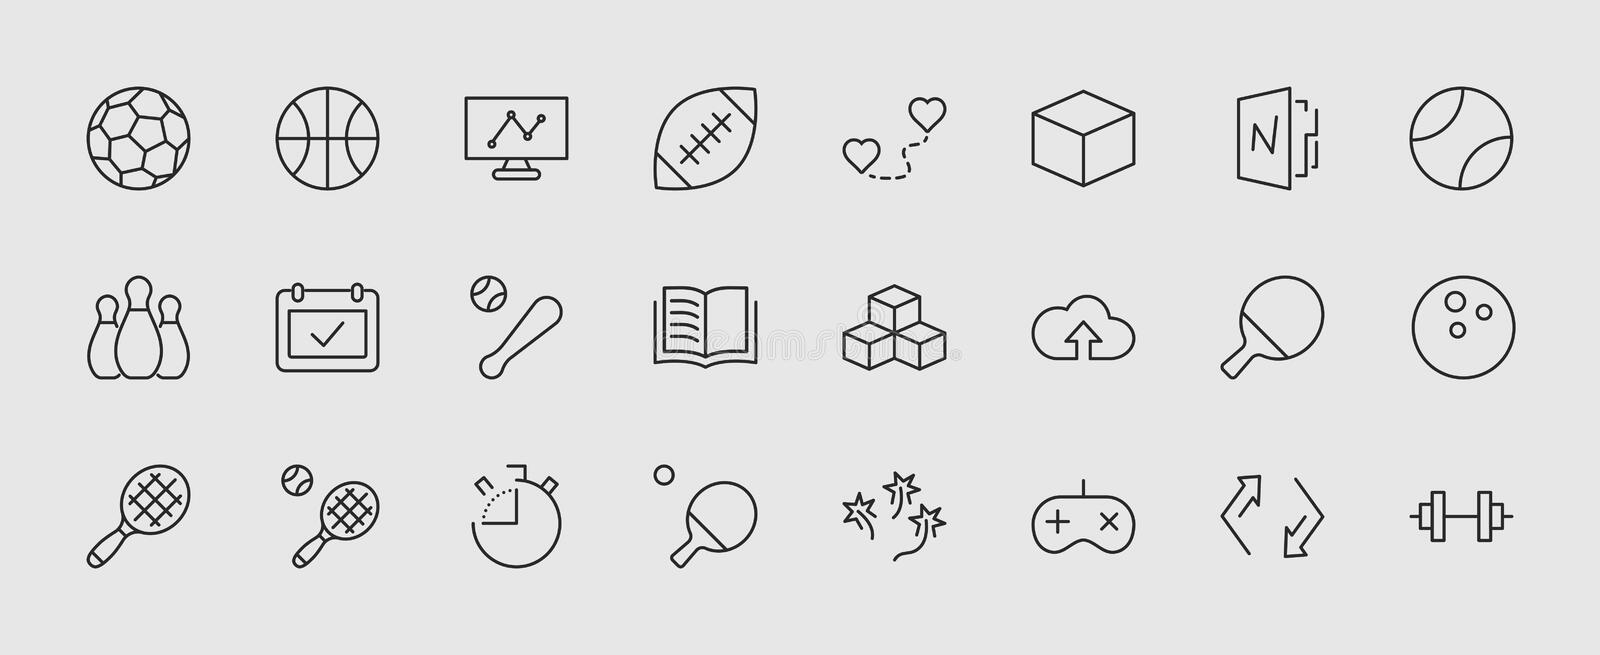 Set of sports balls, hobbies, entertainment vector line icons. It contains symbols of football, basketball, bowling stock illustration